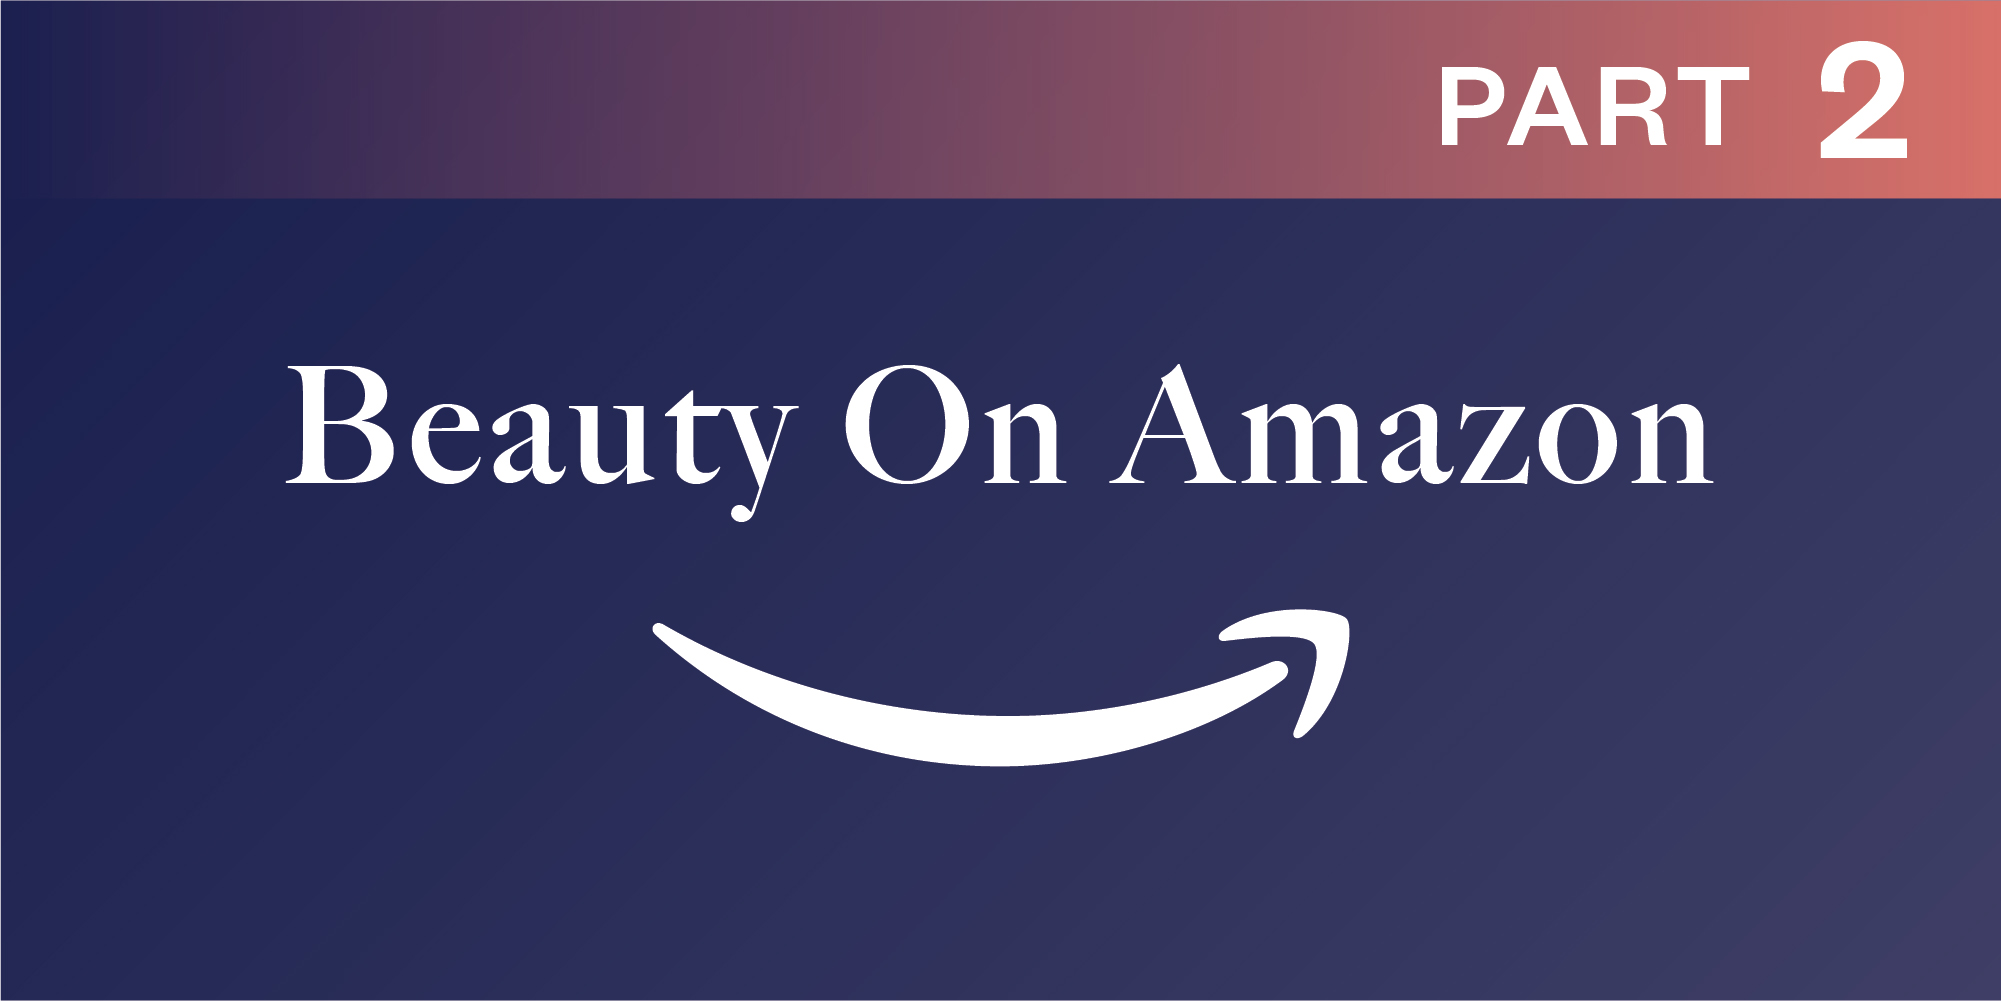 Beauty On Amazon Part 2: Evaluating Options Available To Beauty Brands When Engaging Amazon